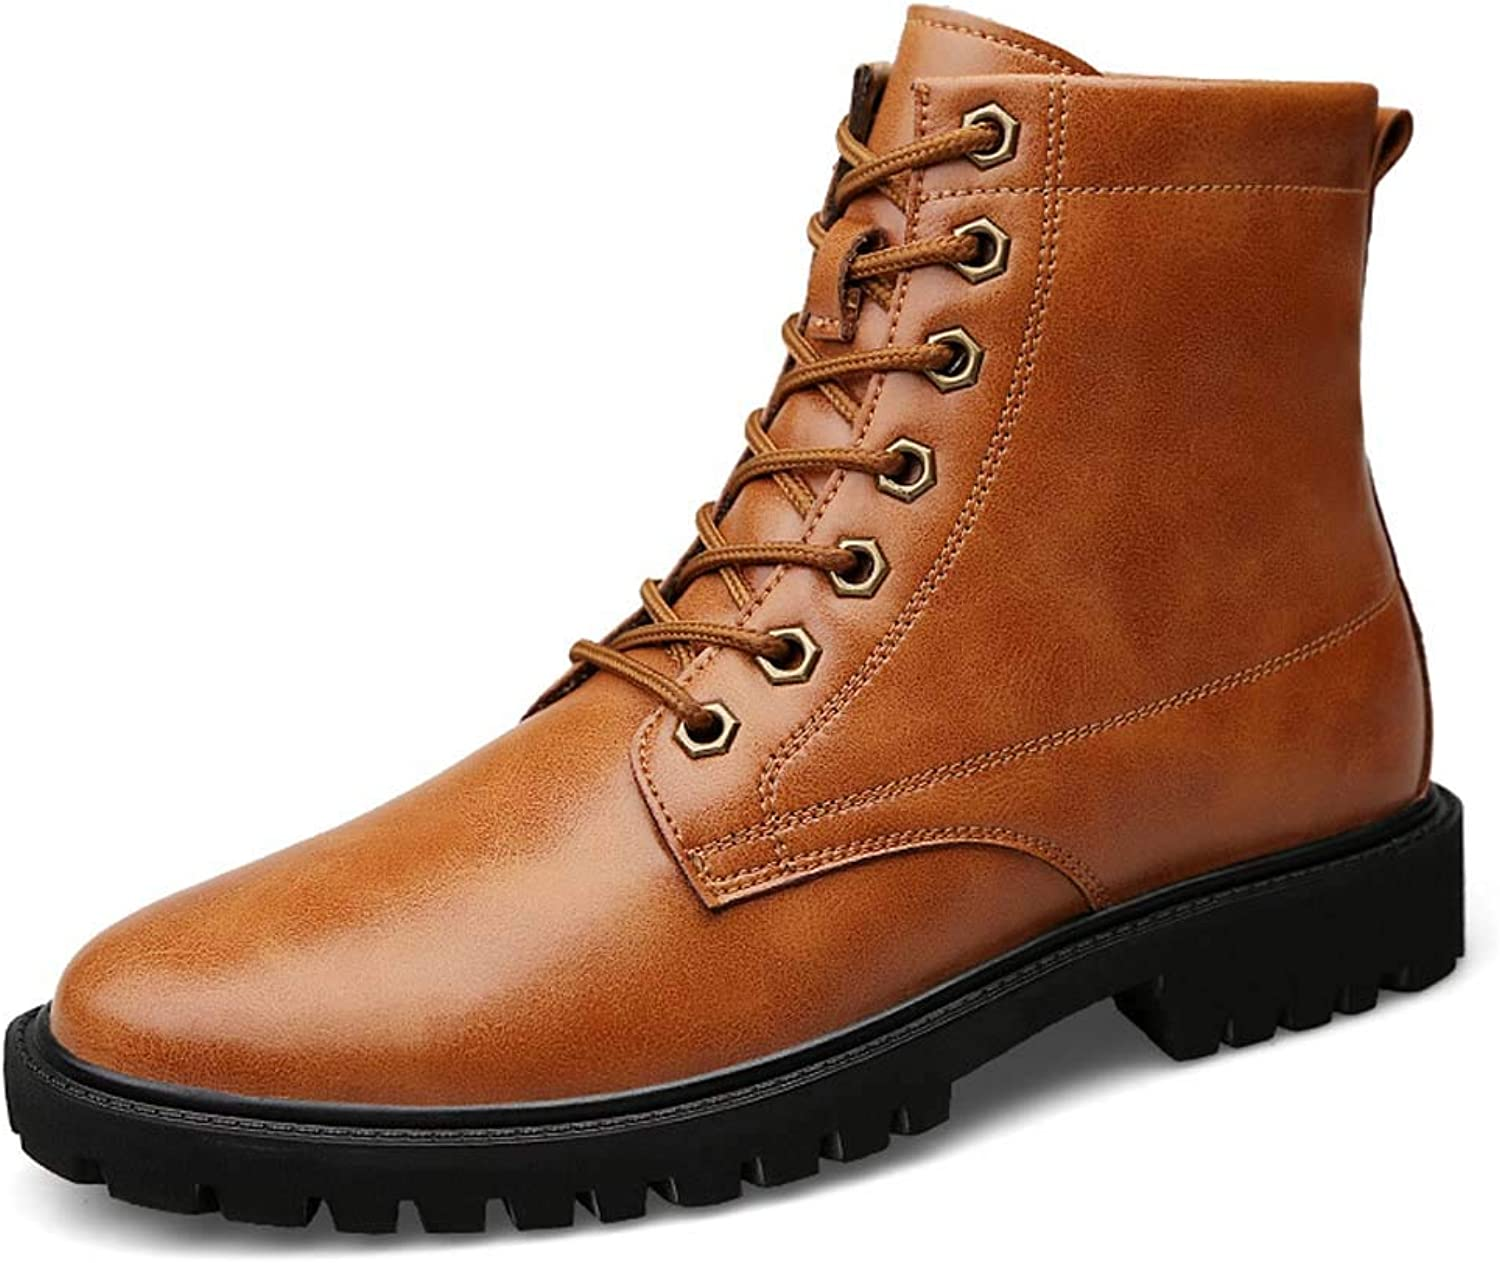 Men's Martin Boots Casual High-Top Leather Boots Fashion Warm Men's Boots